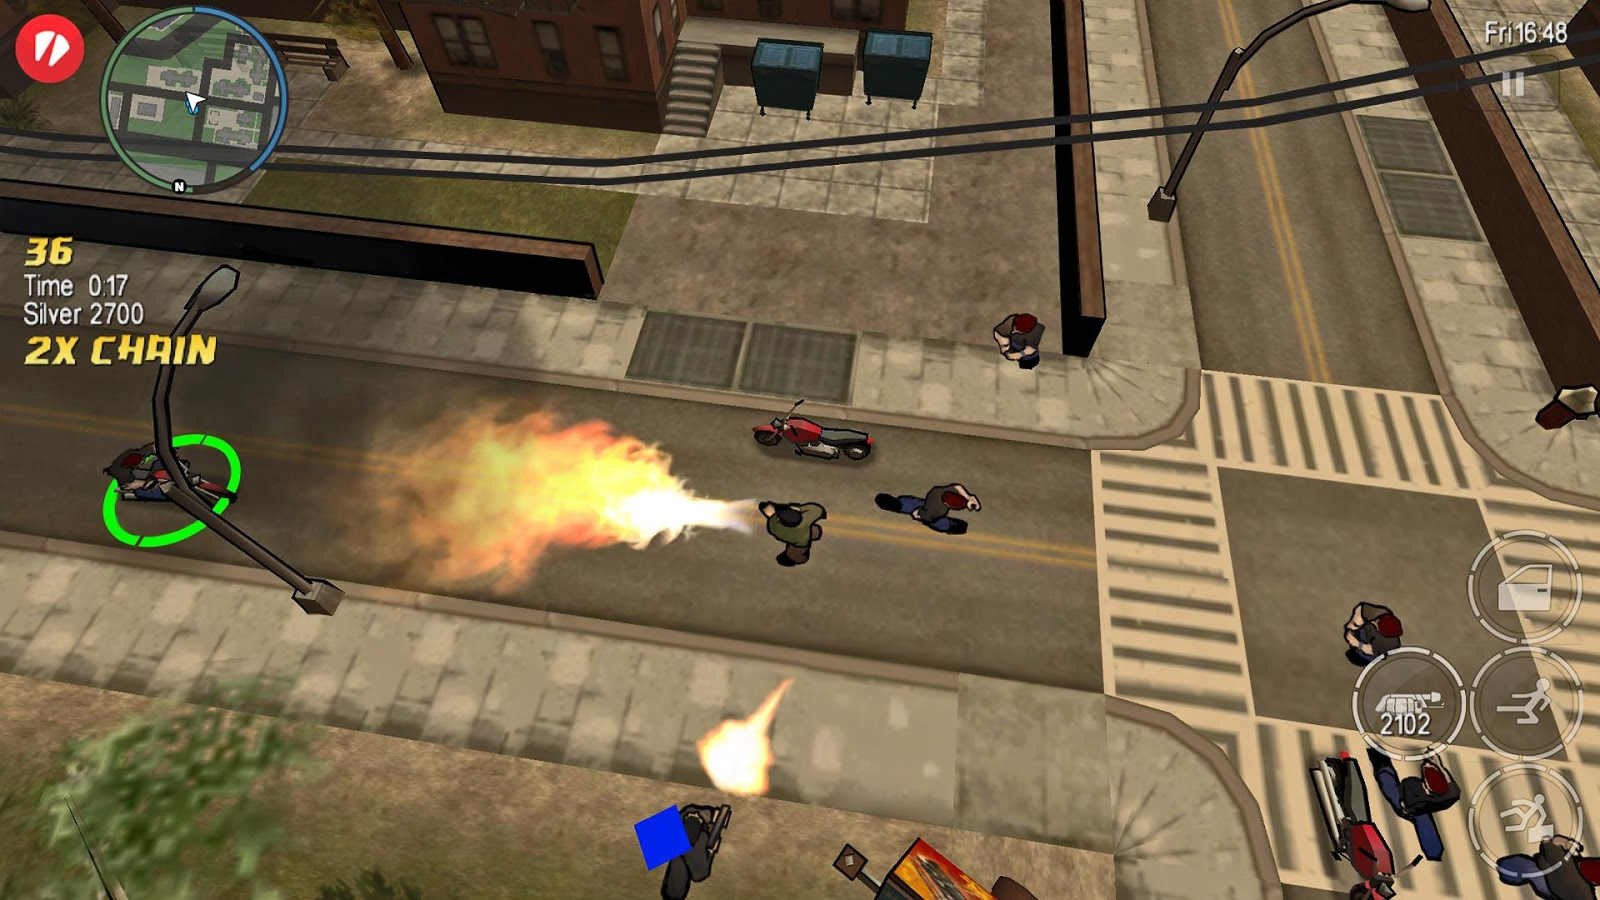 GTA: Chinatown Wars apk + data v1.01 Android (MEGA)